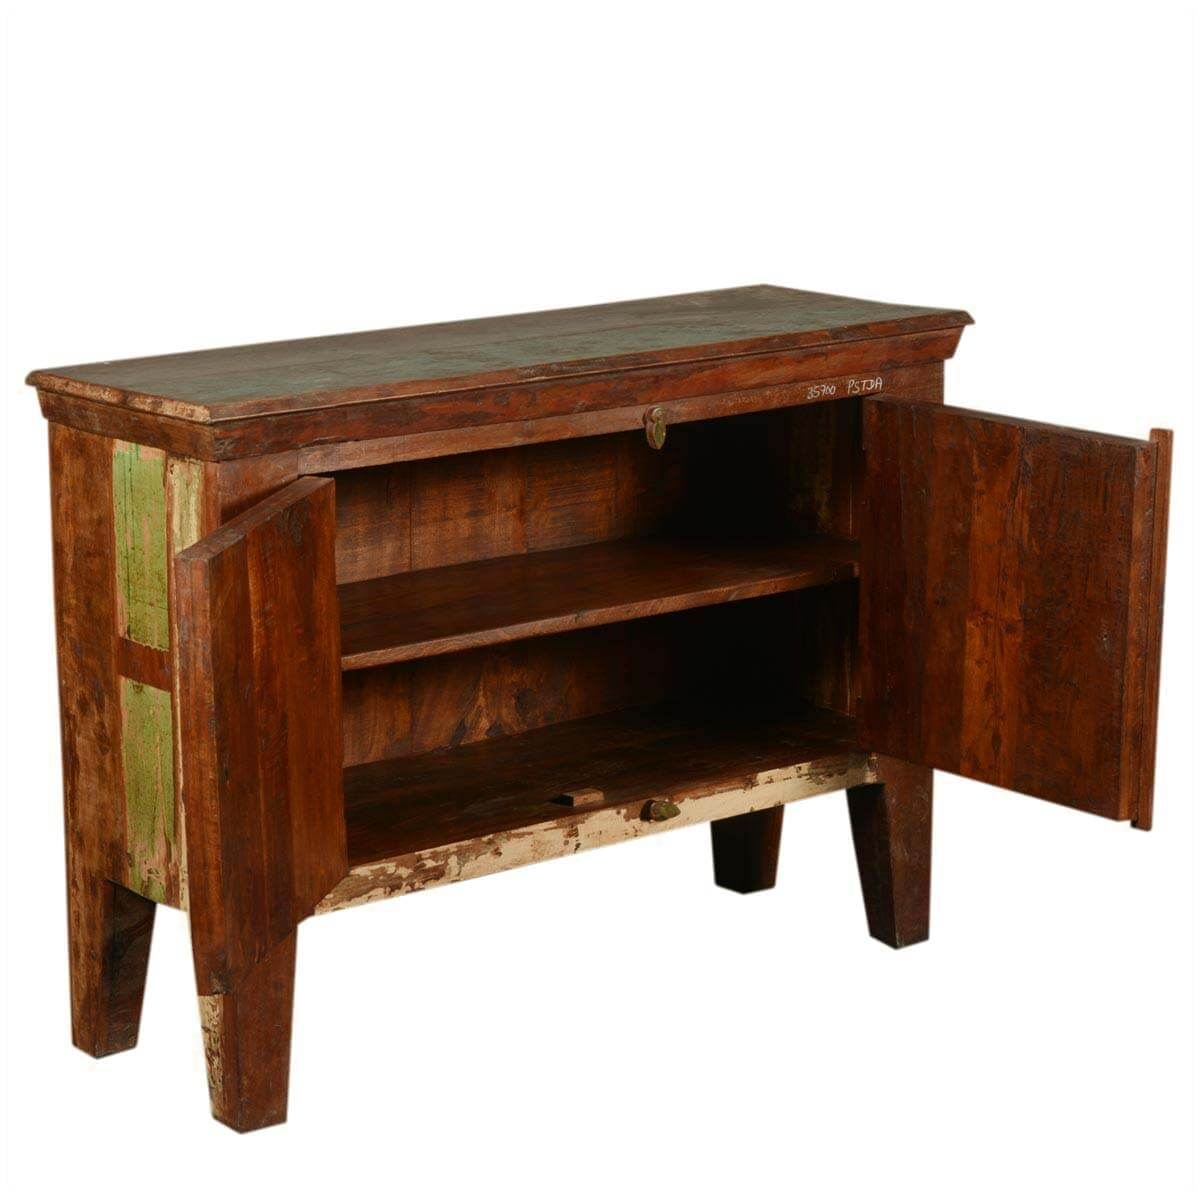 Antique Reclaimed Wood Sideboard Buffet Small Storage Cabinet